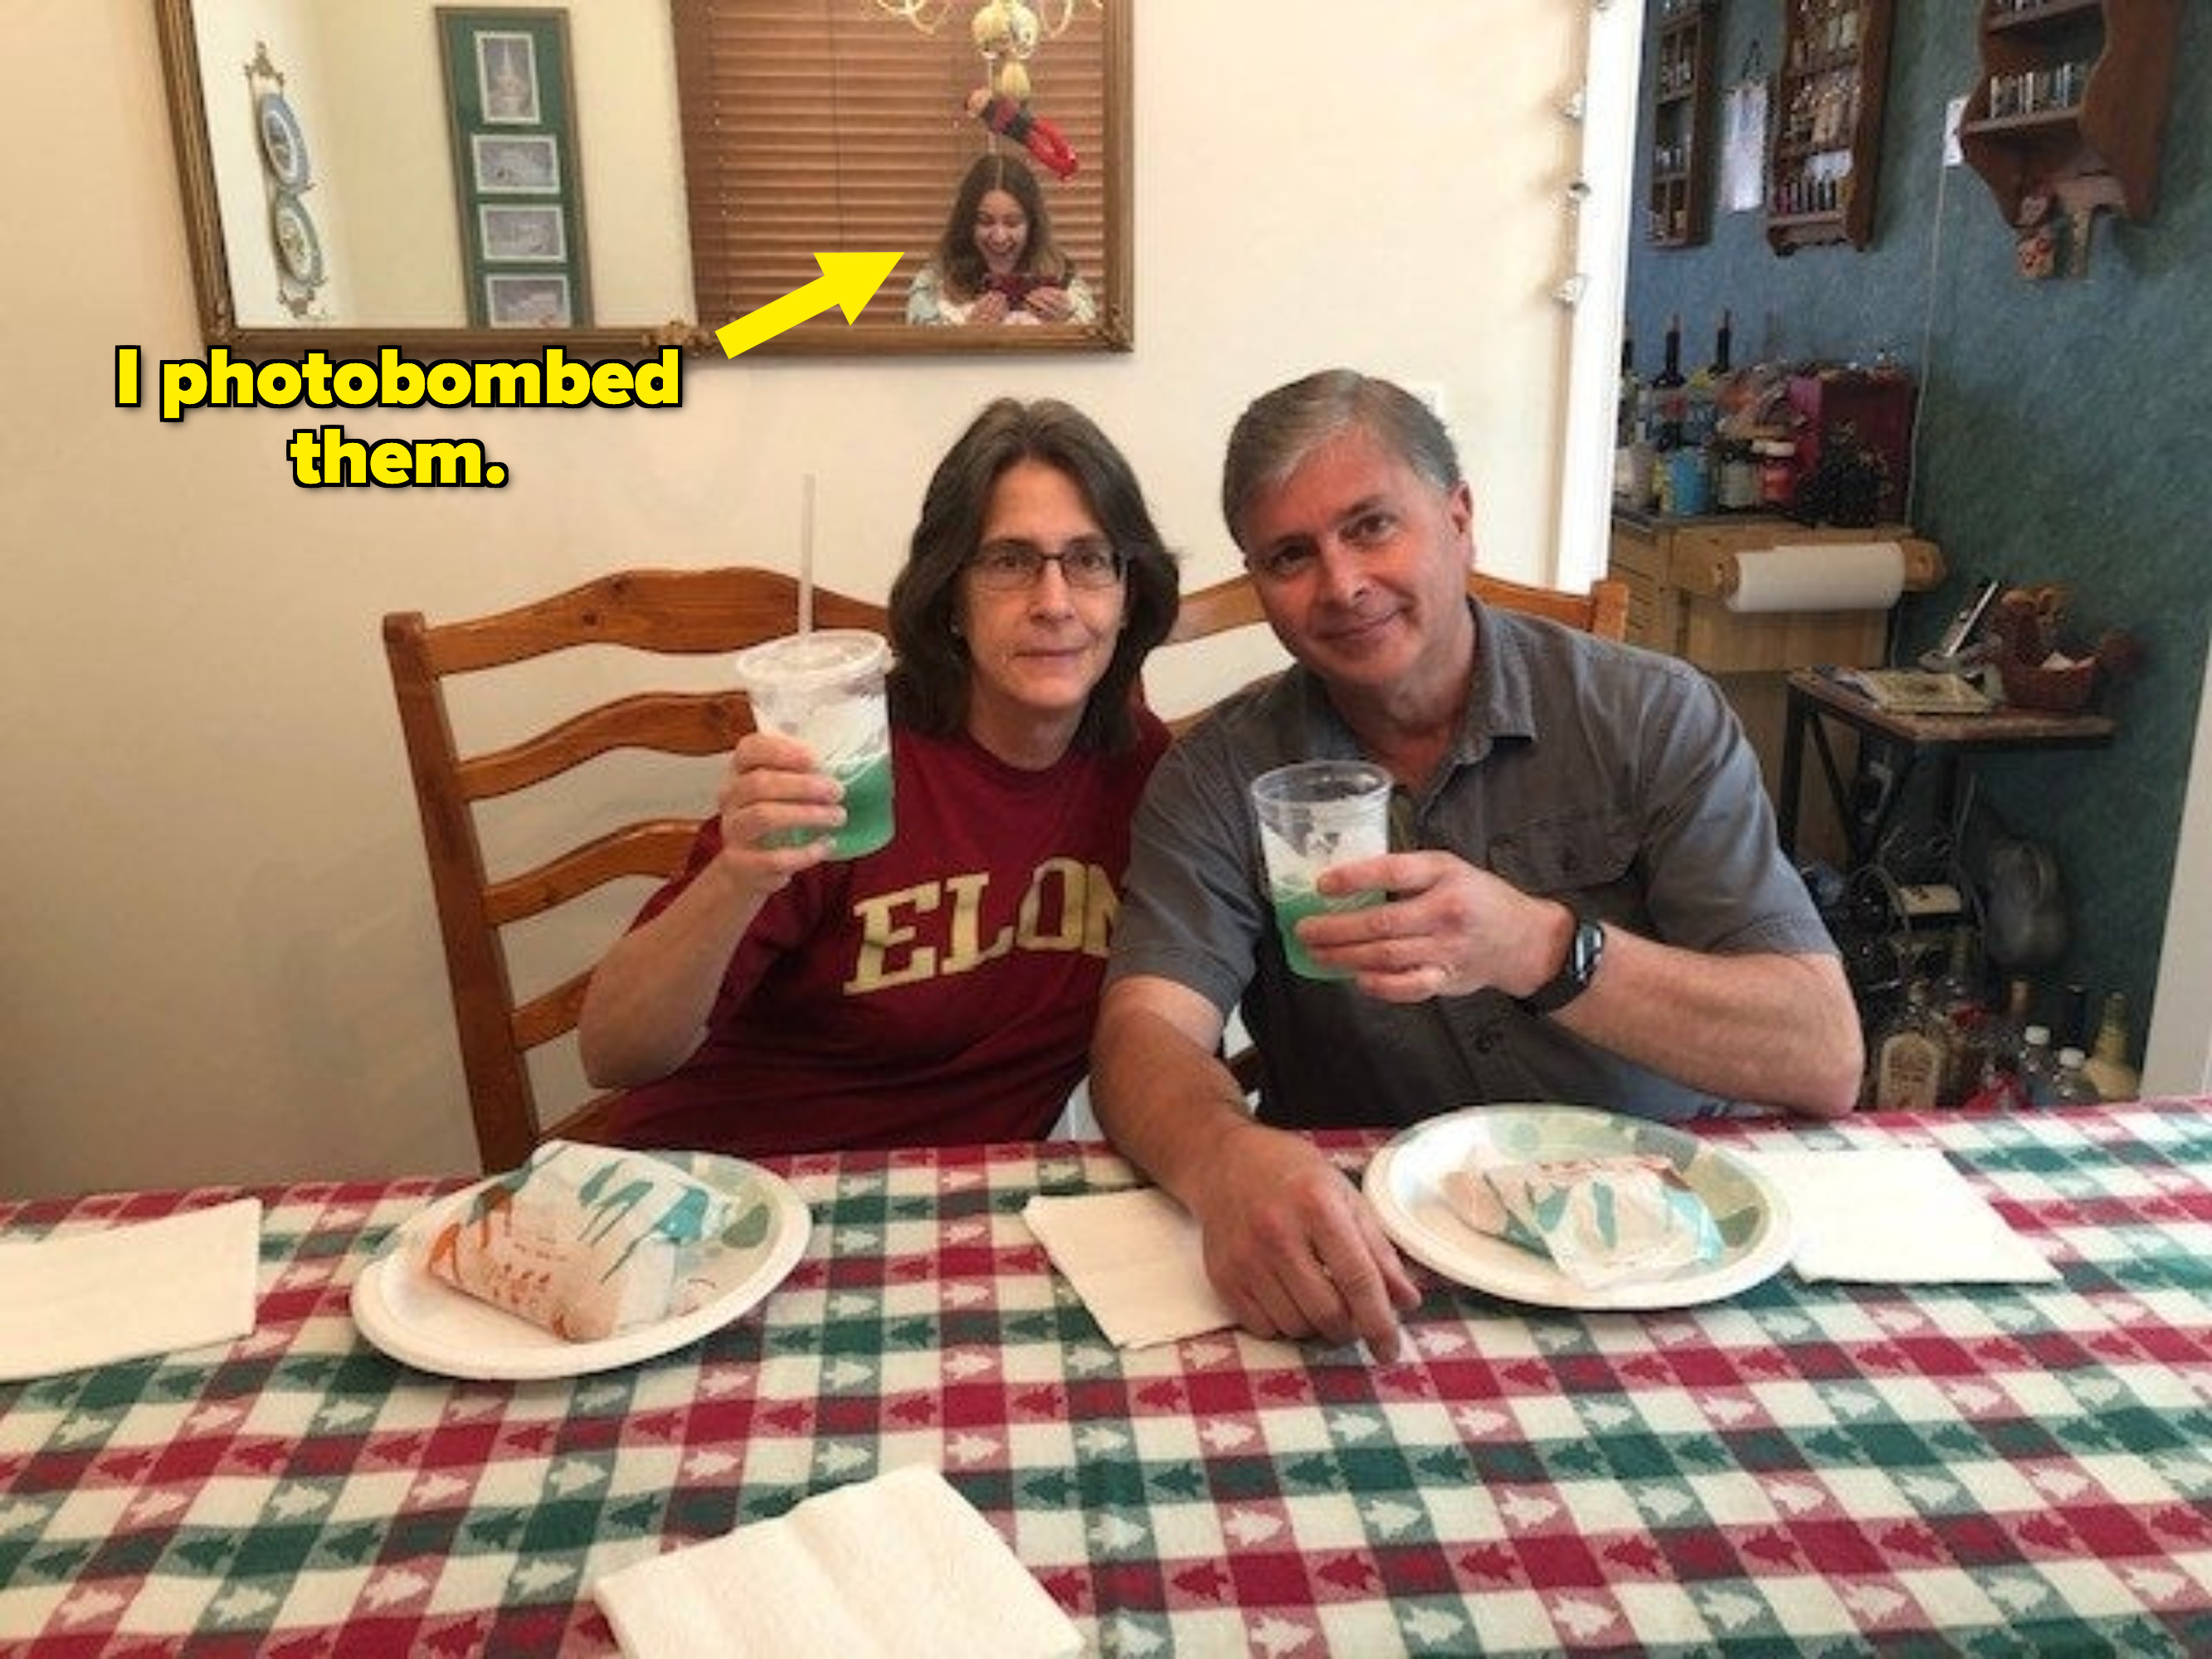 Parents holding Taco Bell drinks while sitting together at a table